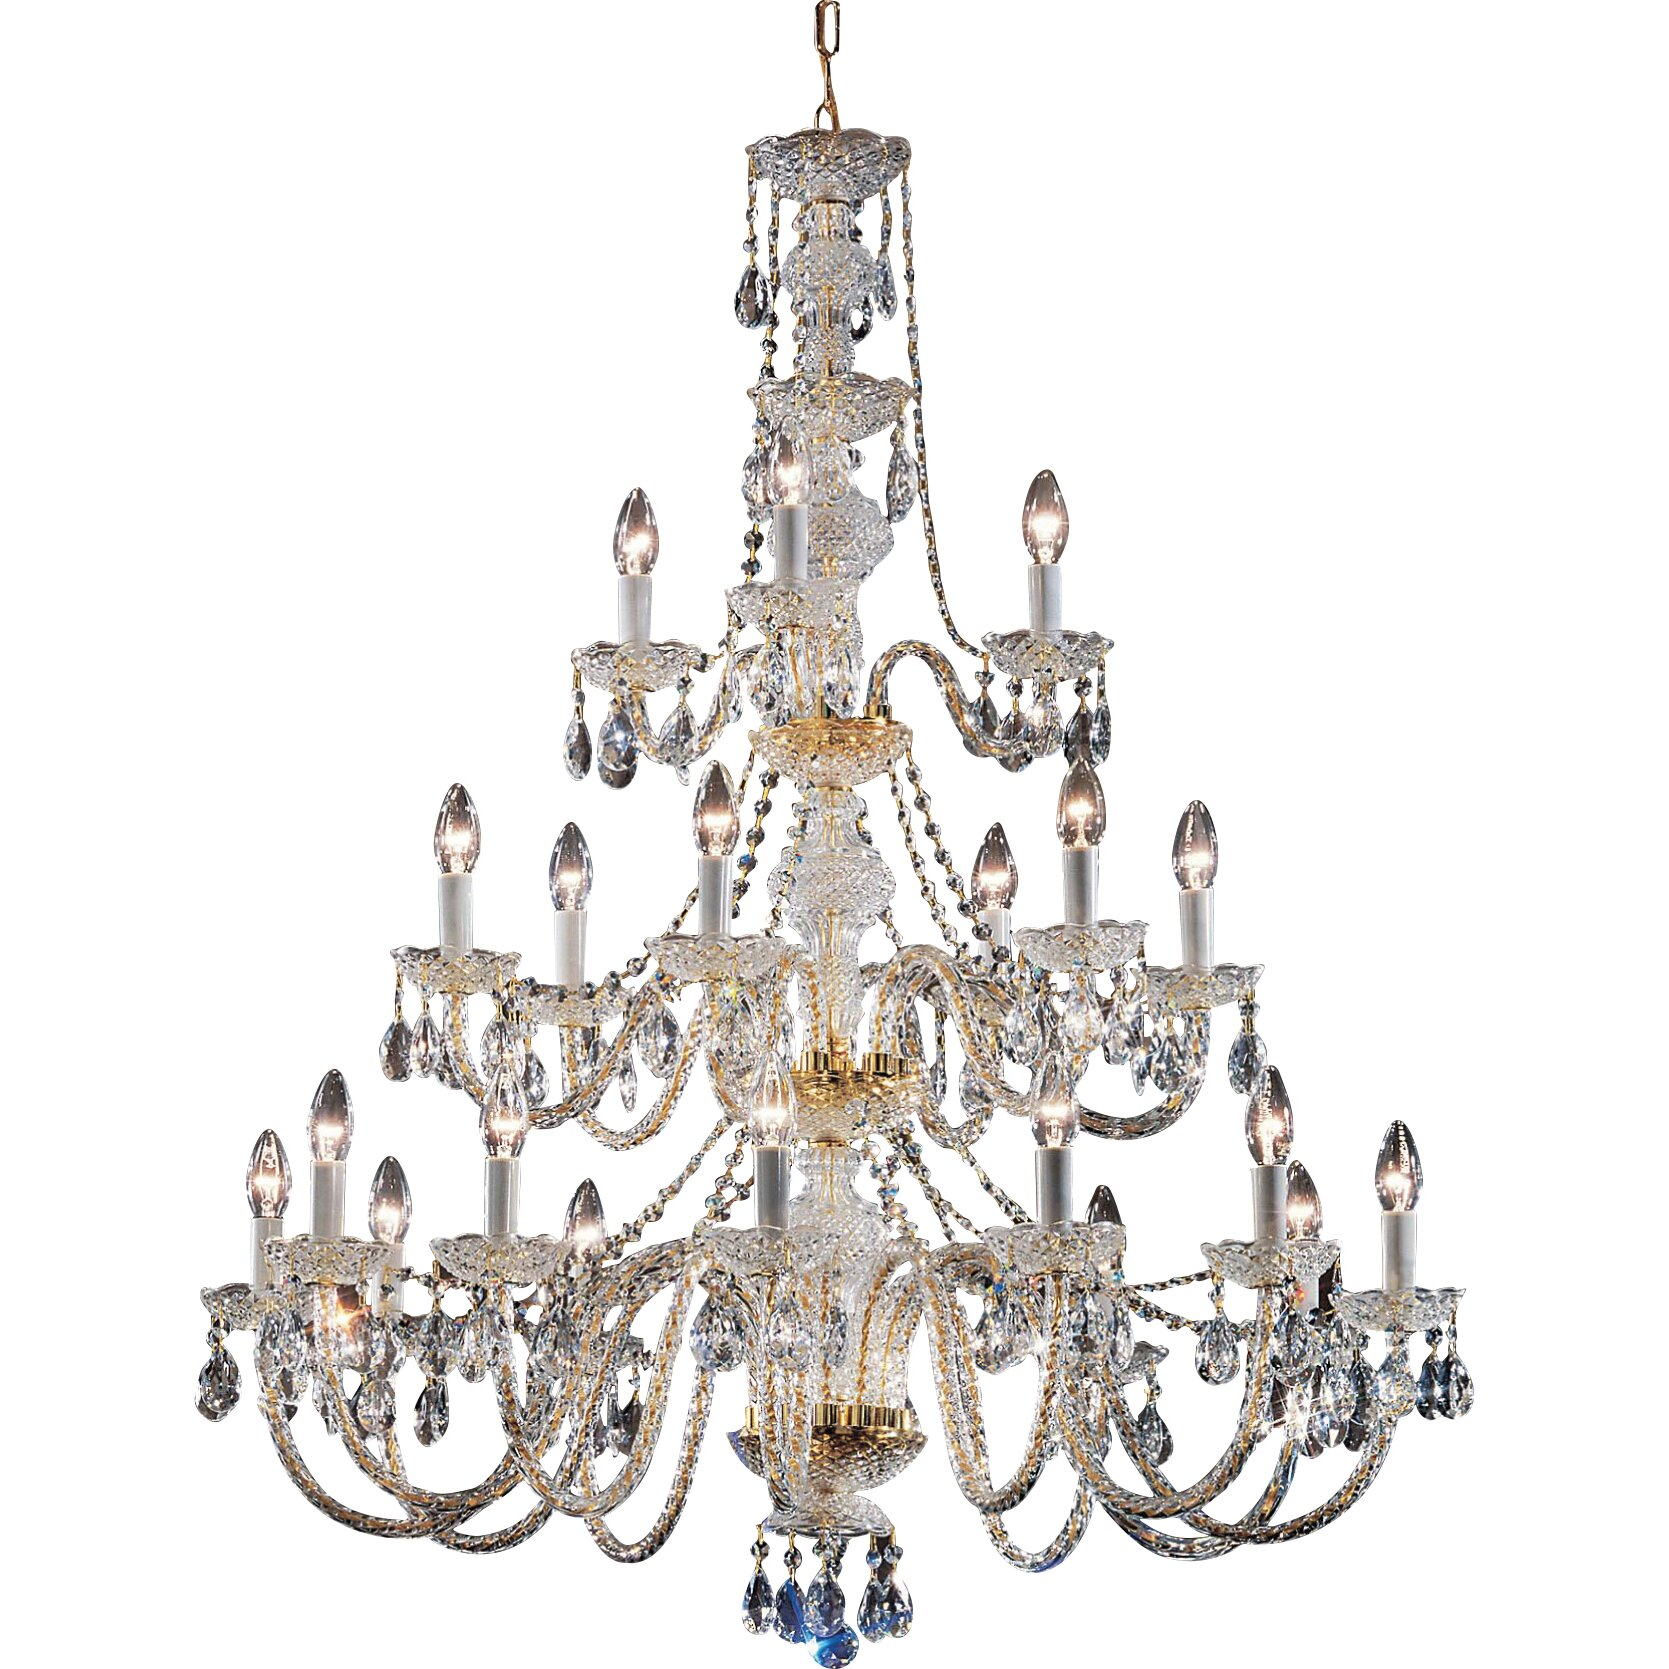 Classic Lighting Monticello 21 Light Crystal Chandelier